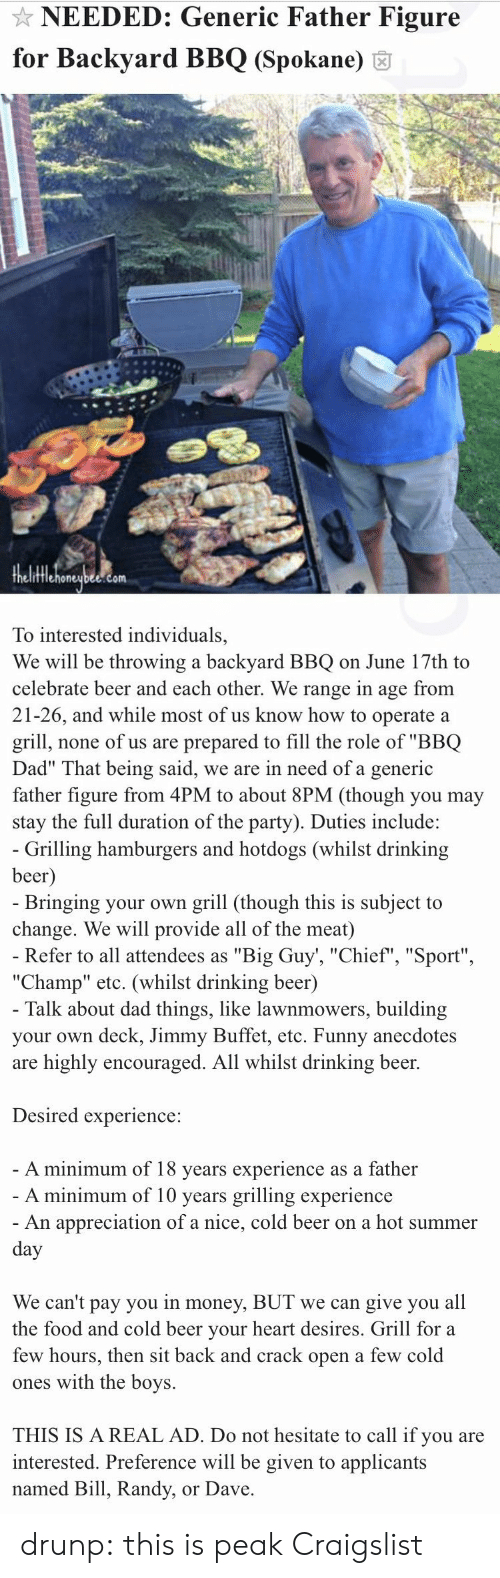 "Cold Beer: NEEDED: Generic Father Figure  for Backyard BBQ (Spokane) 6  fflehoneubee.com  To interested individuals,  We will be throwing a backyard BBQ on June 17th to  celebrate beer and each other. We range in age from  21-26, and while most of us know how to operate a  grill, none of us are prepared to fill the role of ""BBQ  Dad"" That being said, we are in need of a generic  father figure from 4PM to about 8PM (though you may  stay the full duration of the party). Duties include:   Grilling hamburgers and hotdogs (whilst drinking  beer  Bringing your own grill (though this is subject to  change. We will provide all of the meat)  Refer to all attendees as ""Big Guy', ""Chief"", ""Sport""  ""Champ"" etc. (whilst drinking beer)  Talk about dad things, like lawnmowers, building  your own deck, Jimmy Buffet, etc. Funny anecdotes  are highly encouraged. All whilst drinking beer.  Desired experience:  A minimum of 18 vears experience as a father  A minimum of 10 years grilling experience  An appreciation of a nice, cold beer on a hot summer  We can't pay you in money, BUT we can give you all  the food and cold beer vour heart desires. Grill for a  few hours, then sit back and crack open a few cold  ones with the boys.  THIS IS A REAL AD. Do not hesitate to call if you are  interested. Preference will be given to applicants  named Bill, Randy, or Dave drunp: this is peak Craigslist"